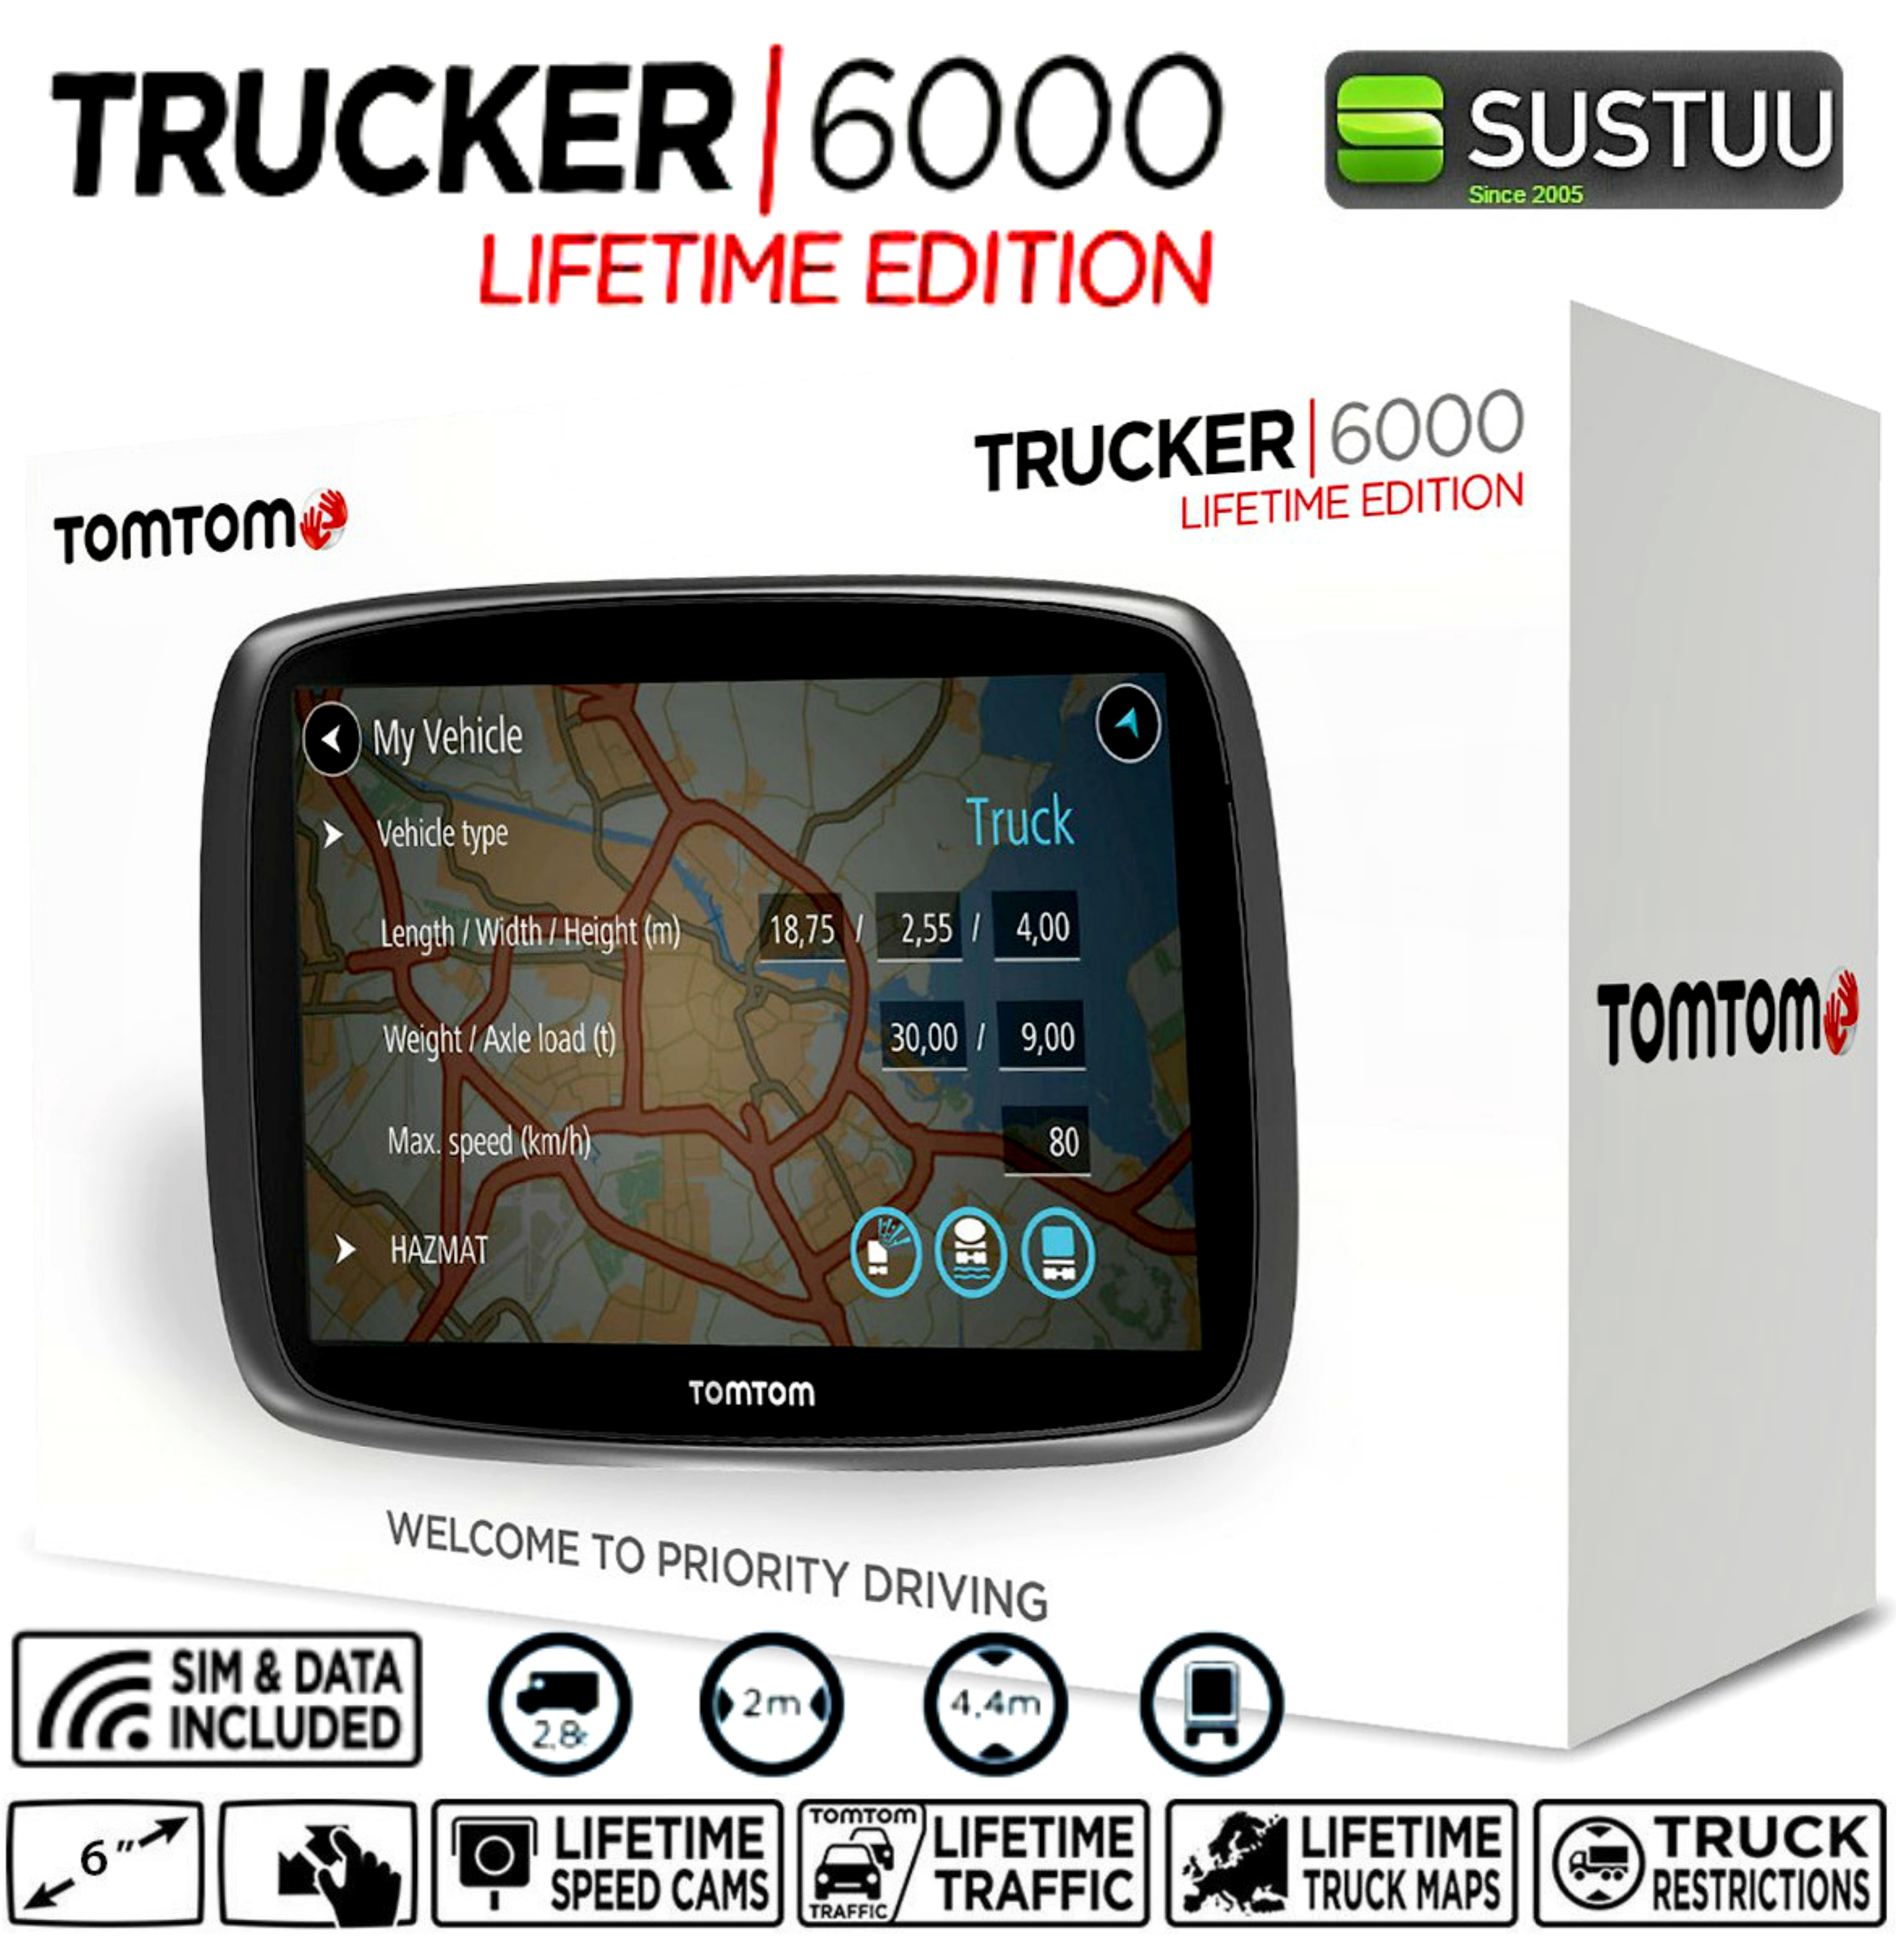 Best Free Sat Nav For Iphone Tomtom Trucker 6000 Gps Satnav Free Lifetime Uk Eu Maps